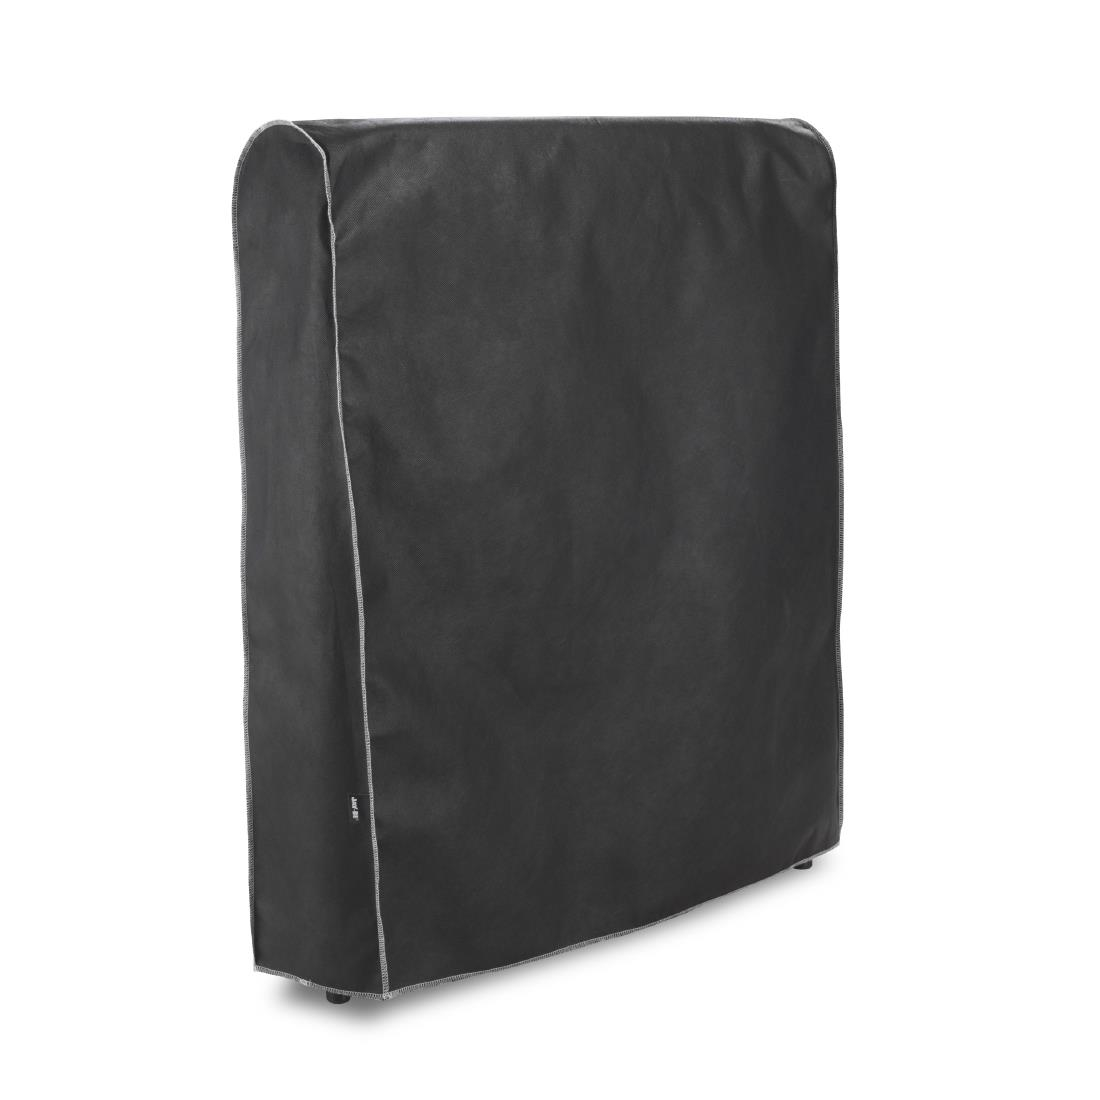 Image of Jay-Be Single Bed Storage Cover for GR373